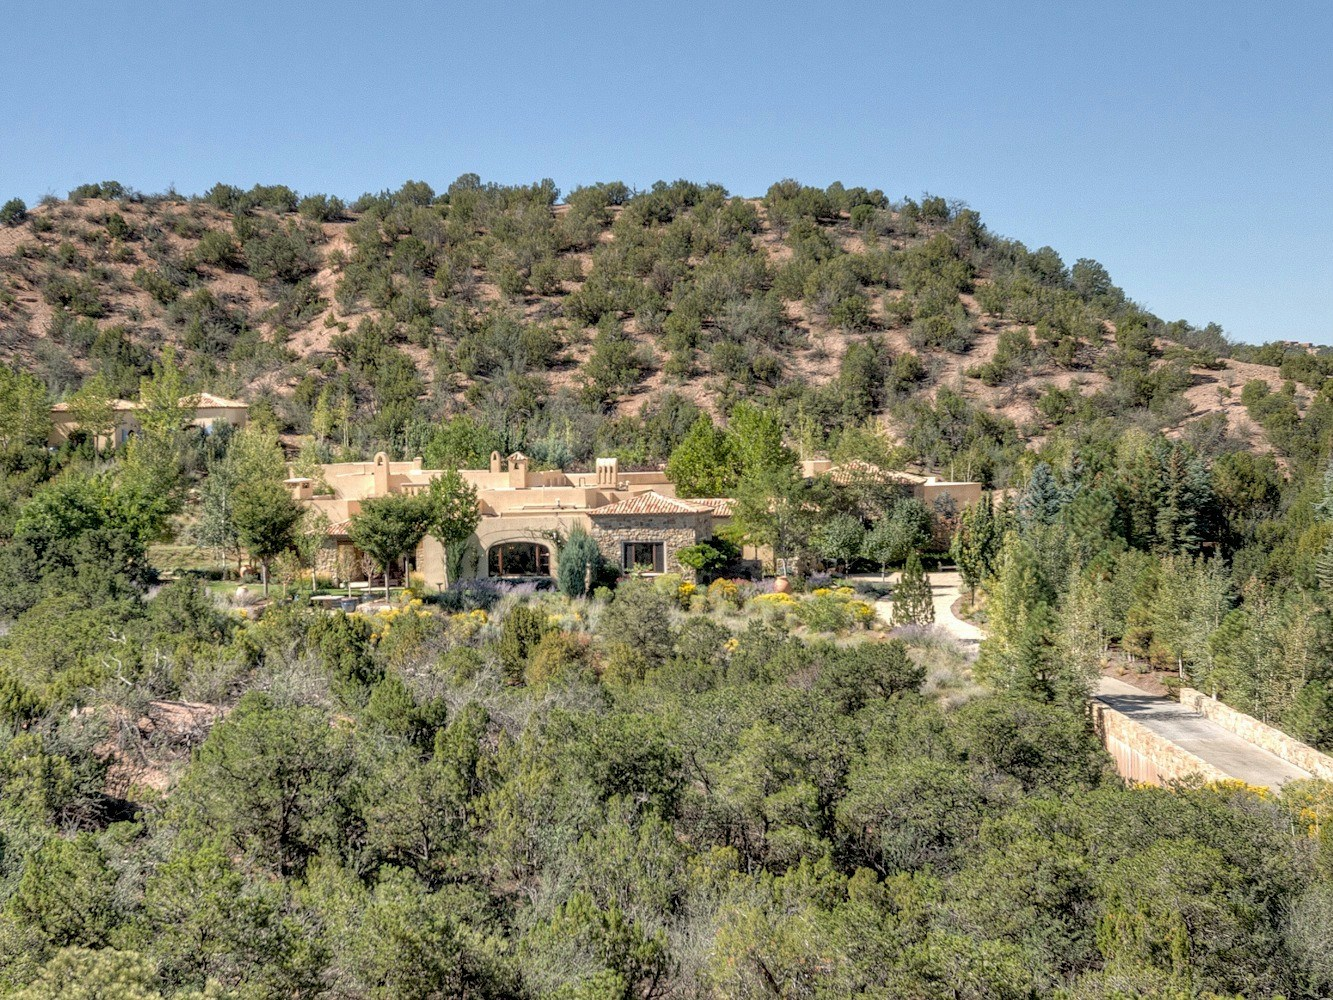 Single Family Home for Sale at Tesuque Ridge Santa Fe, New Mexico 87506 United States